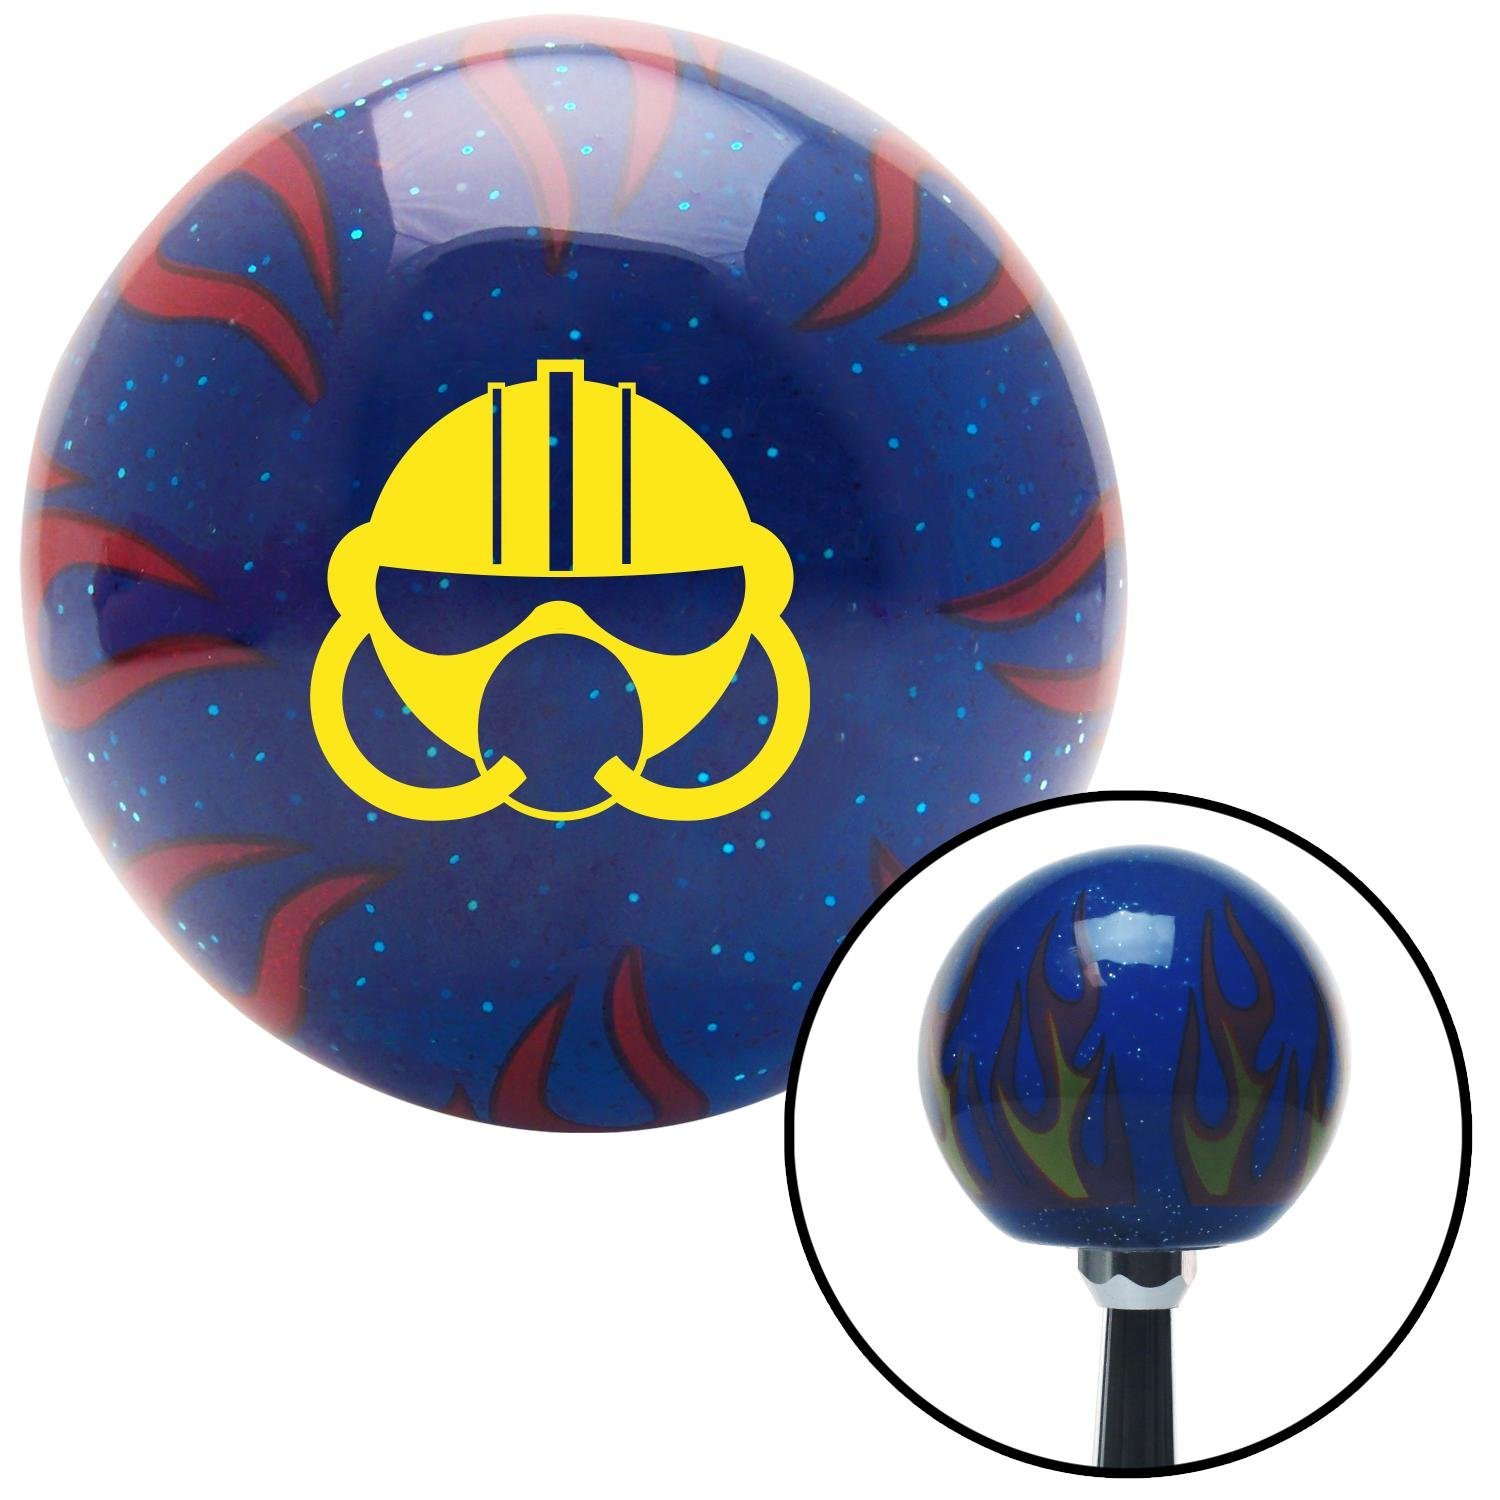 American Shifter 246600 Blue Flame Metal Flake Shift Knob with M16 x 1.5 Insert Yellow Gas Mask